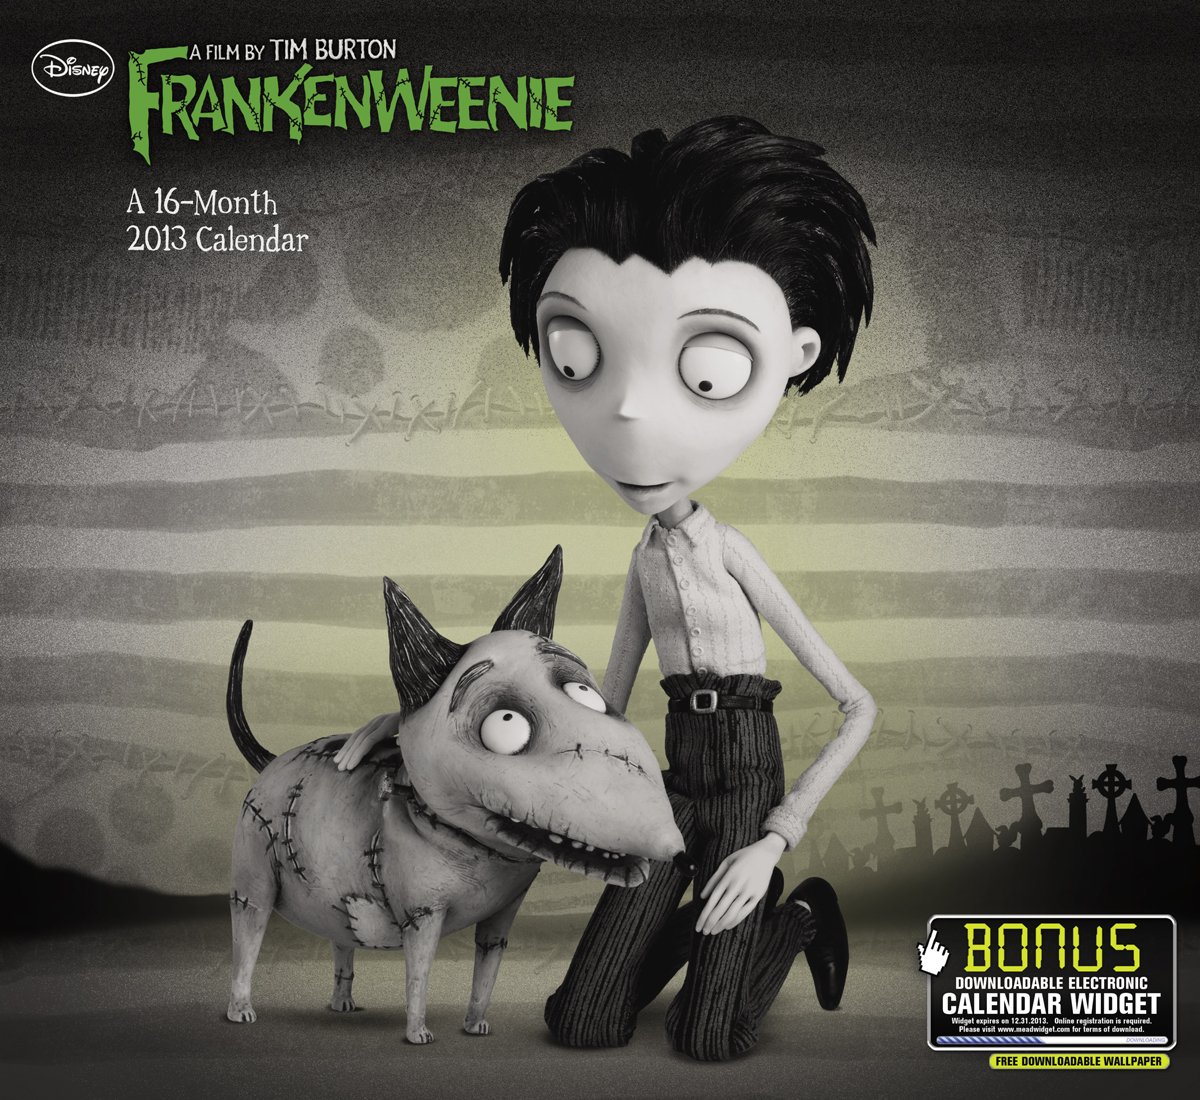 2013 Frankenweenie Wall Calendar Day Dream 9781423817833 Amazon Com Books